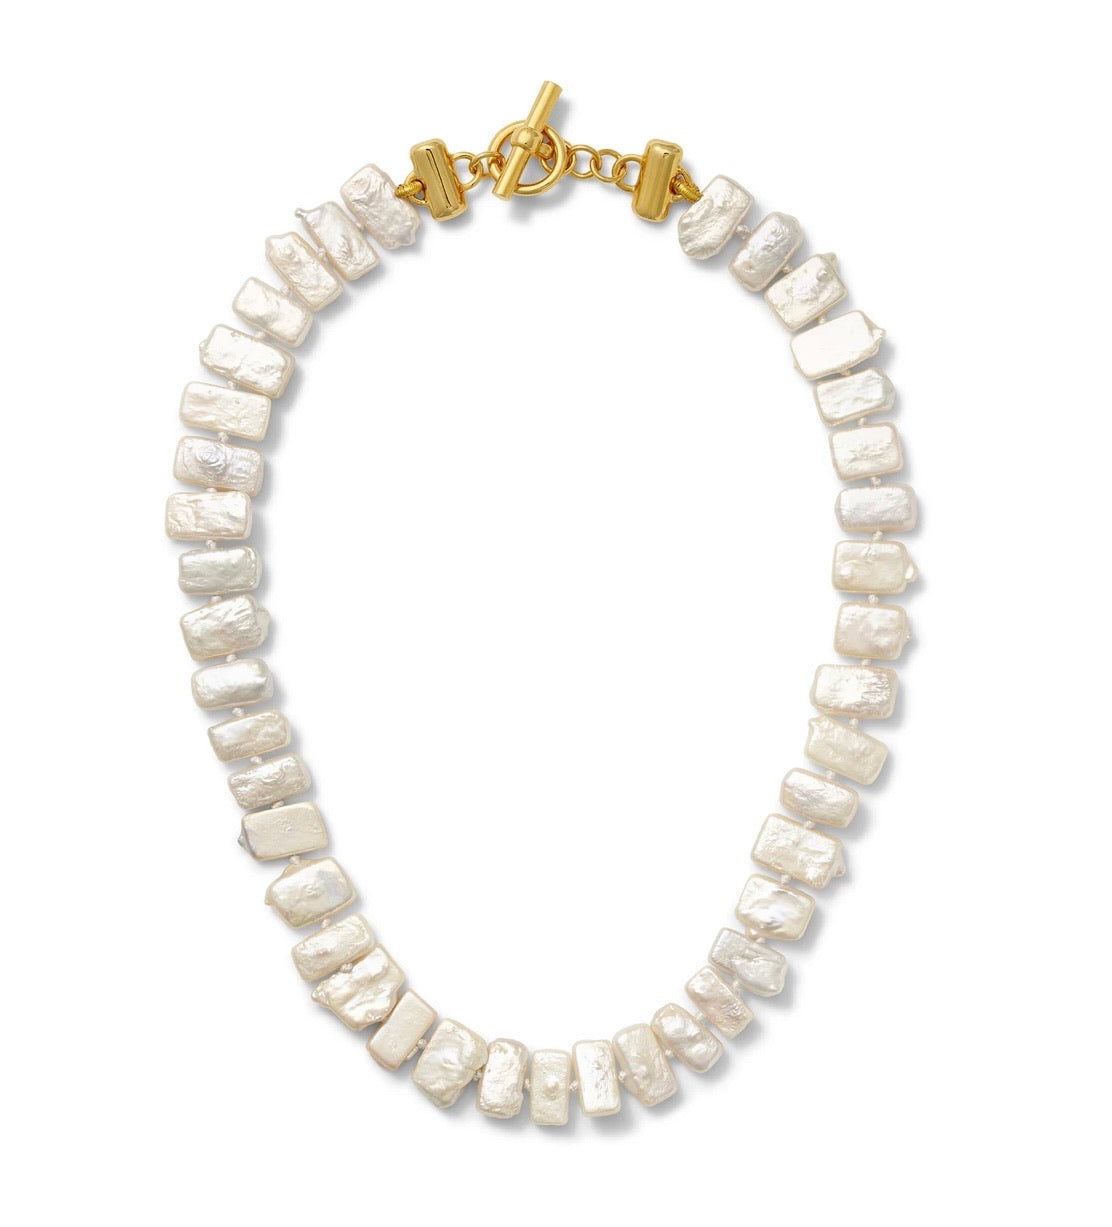 Catherine Canino Chiclets Necklace